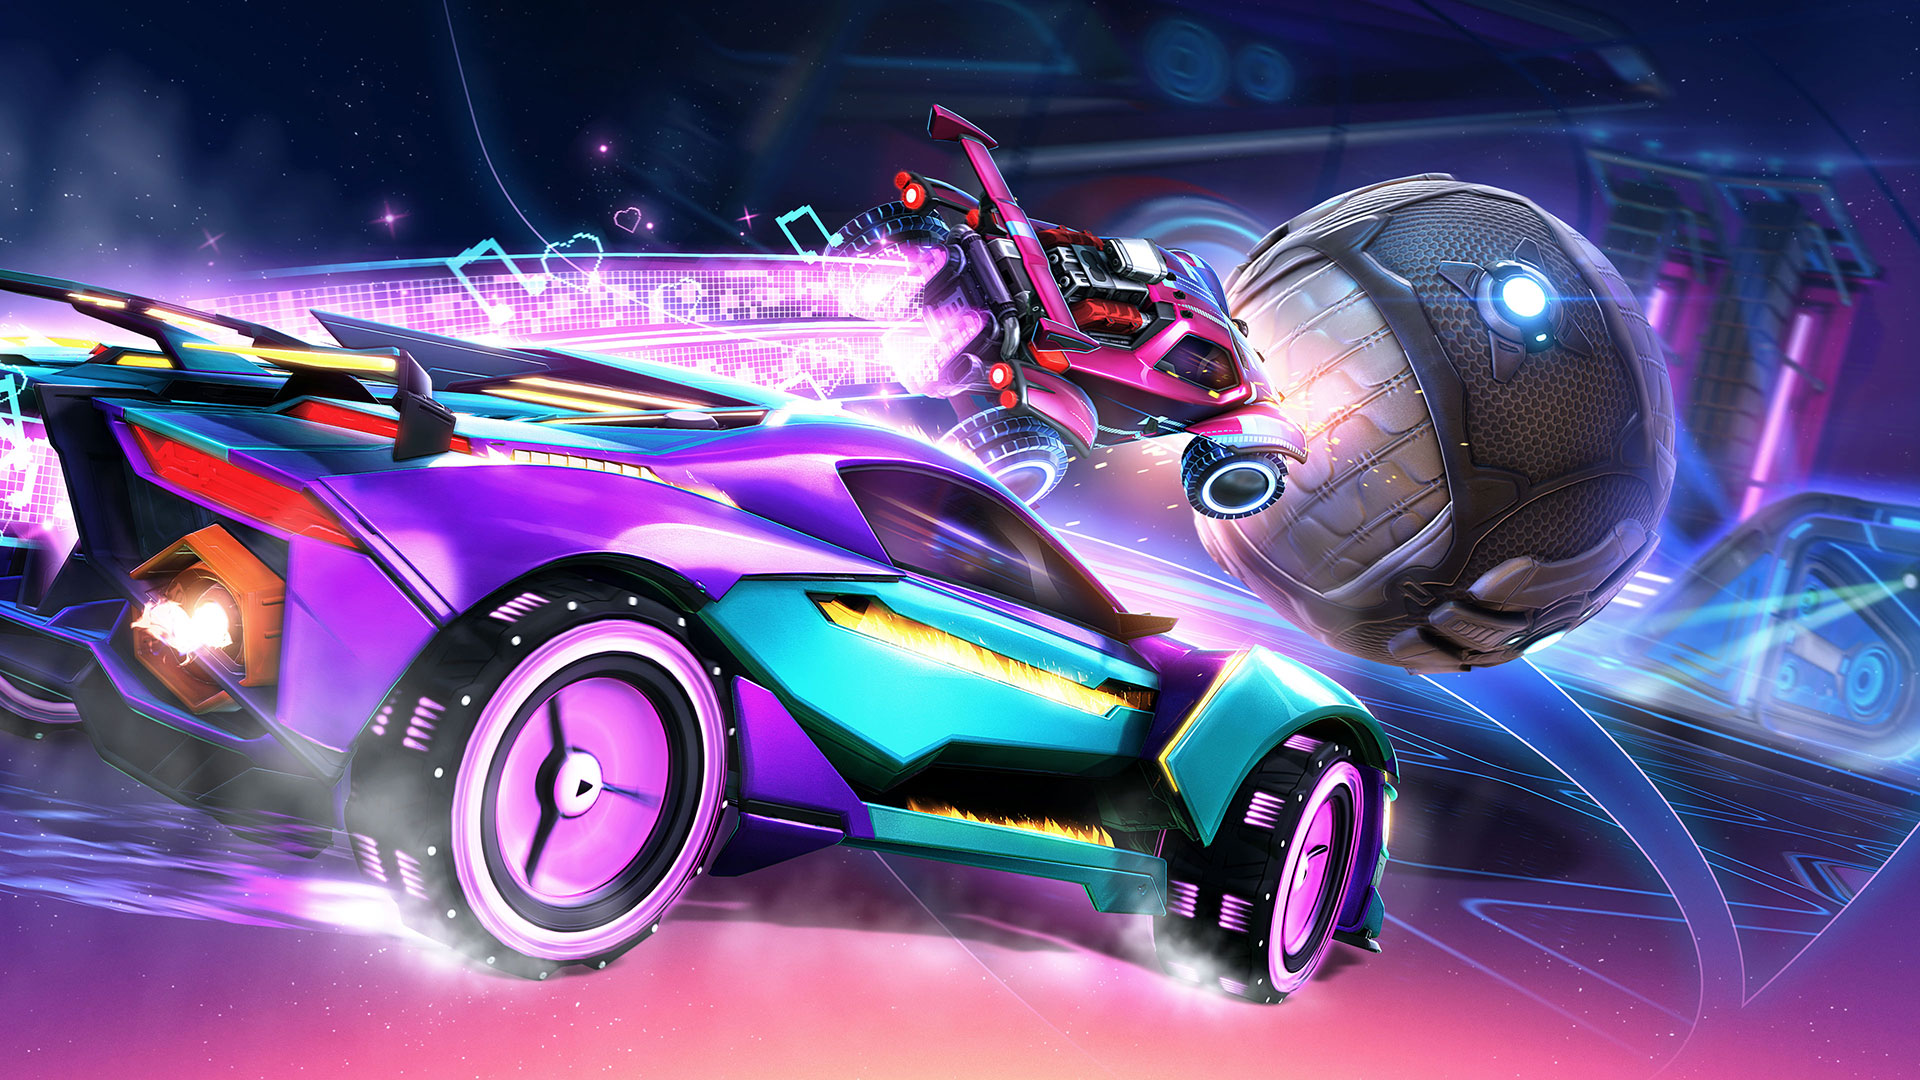 Rocket League Update 1.90 Patch Notes